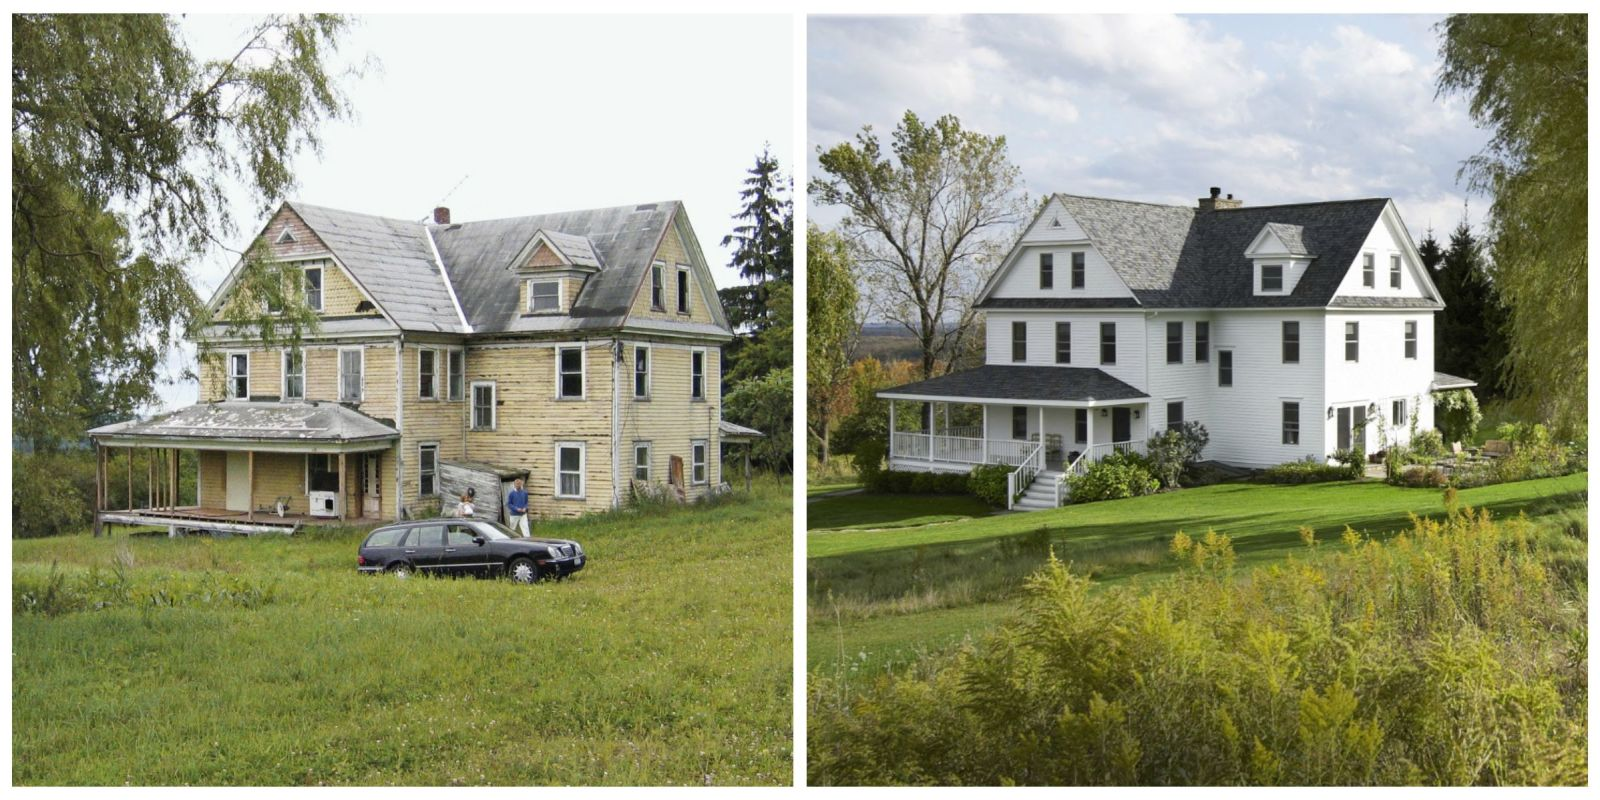 Renovating an Old House   Before and After Pictures of Home Restoration